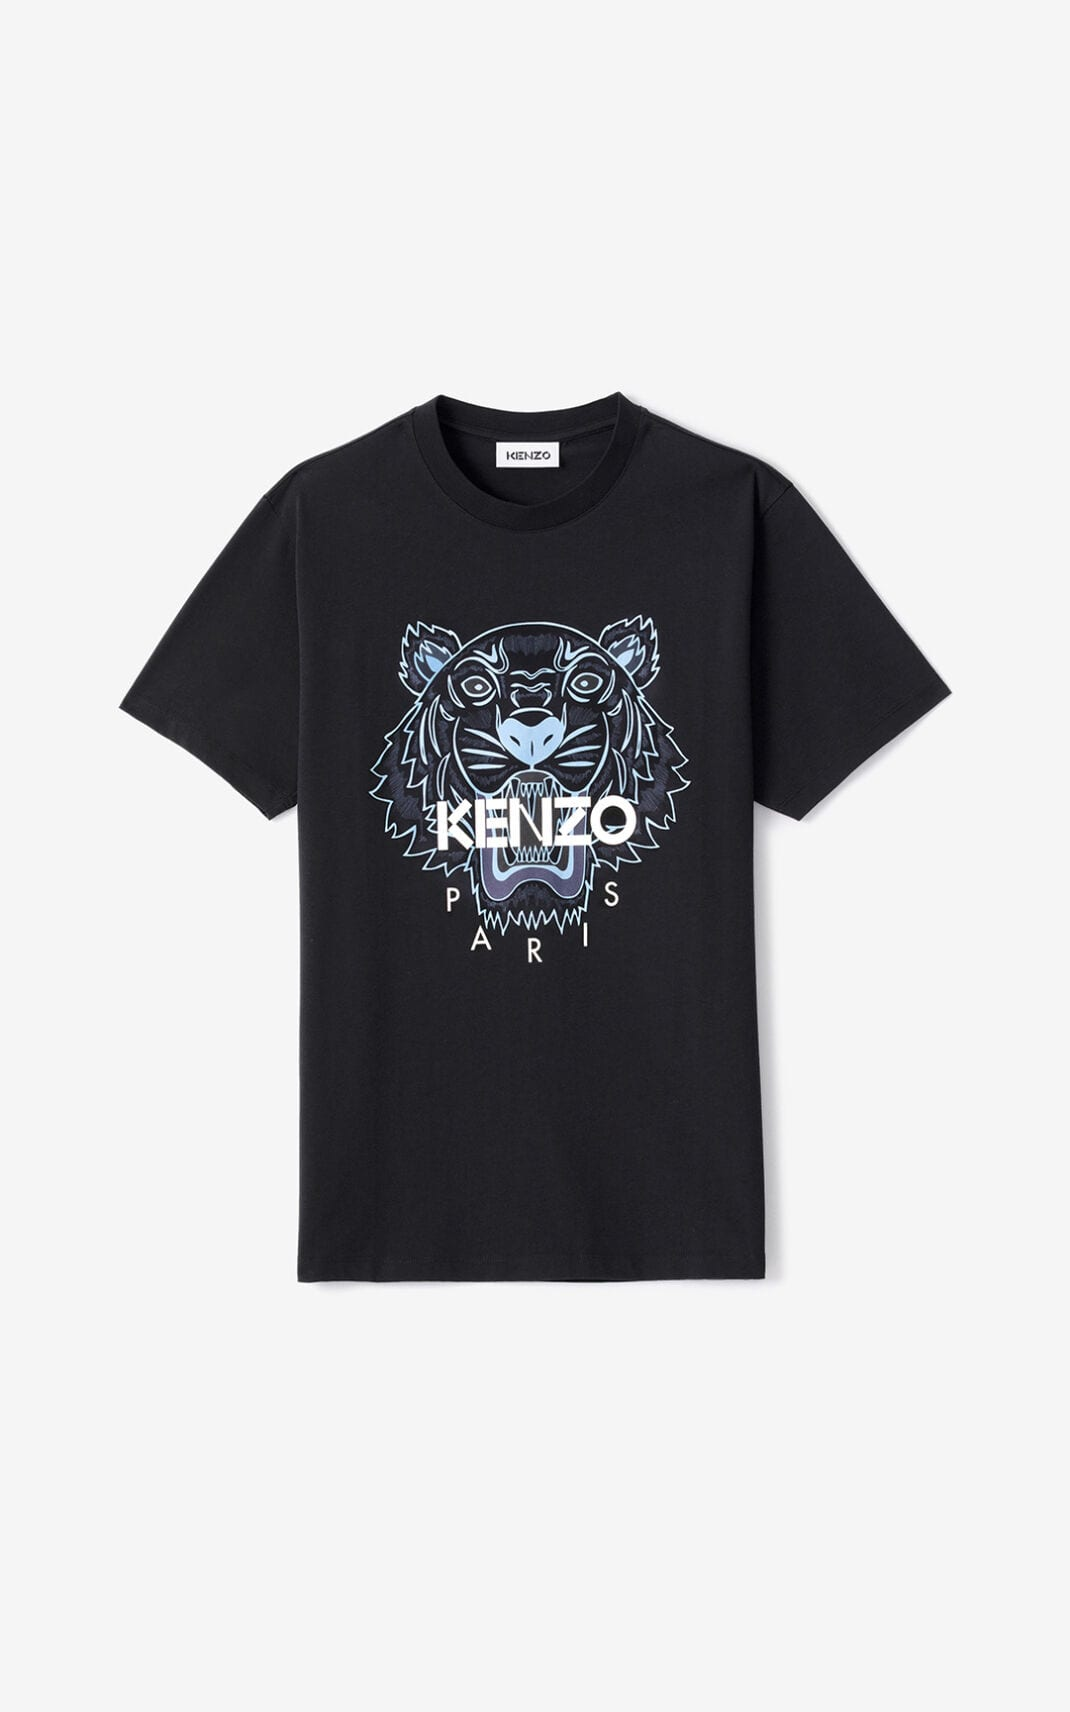 Kenzo KENZO TIGER T-SHIRT BLACK/BLUE